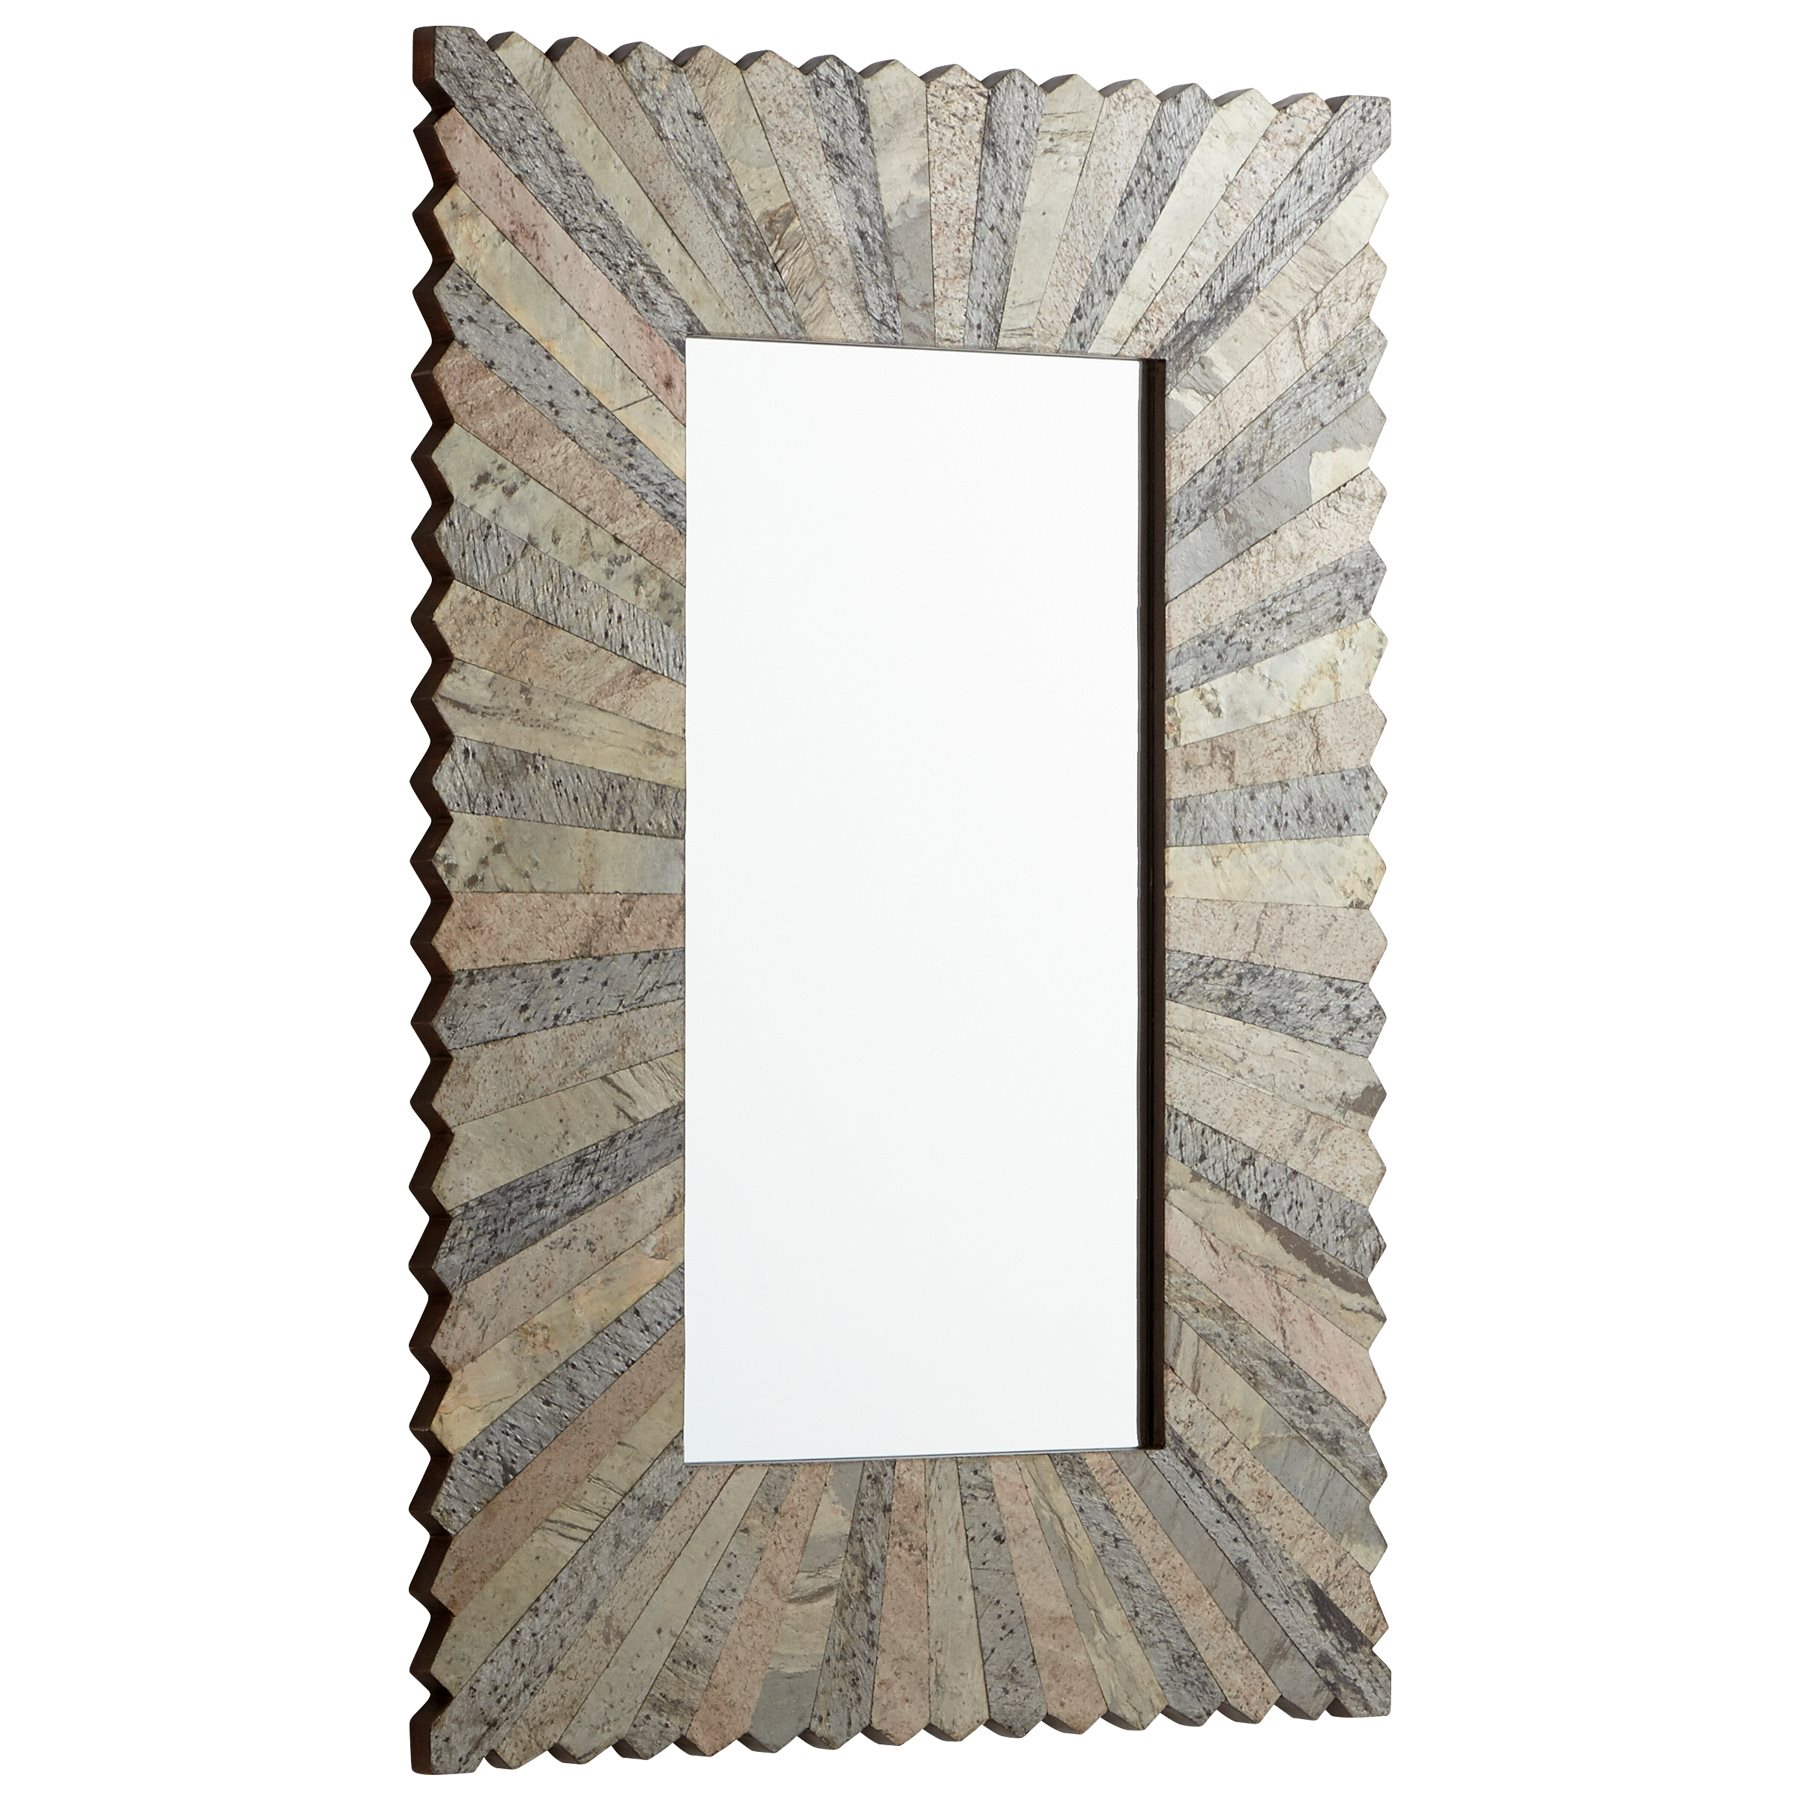 Cyan Design Timon Mirror - 30.25W x 44.25H in.